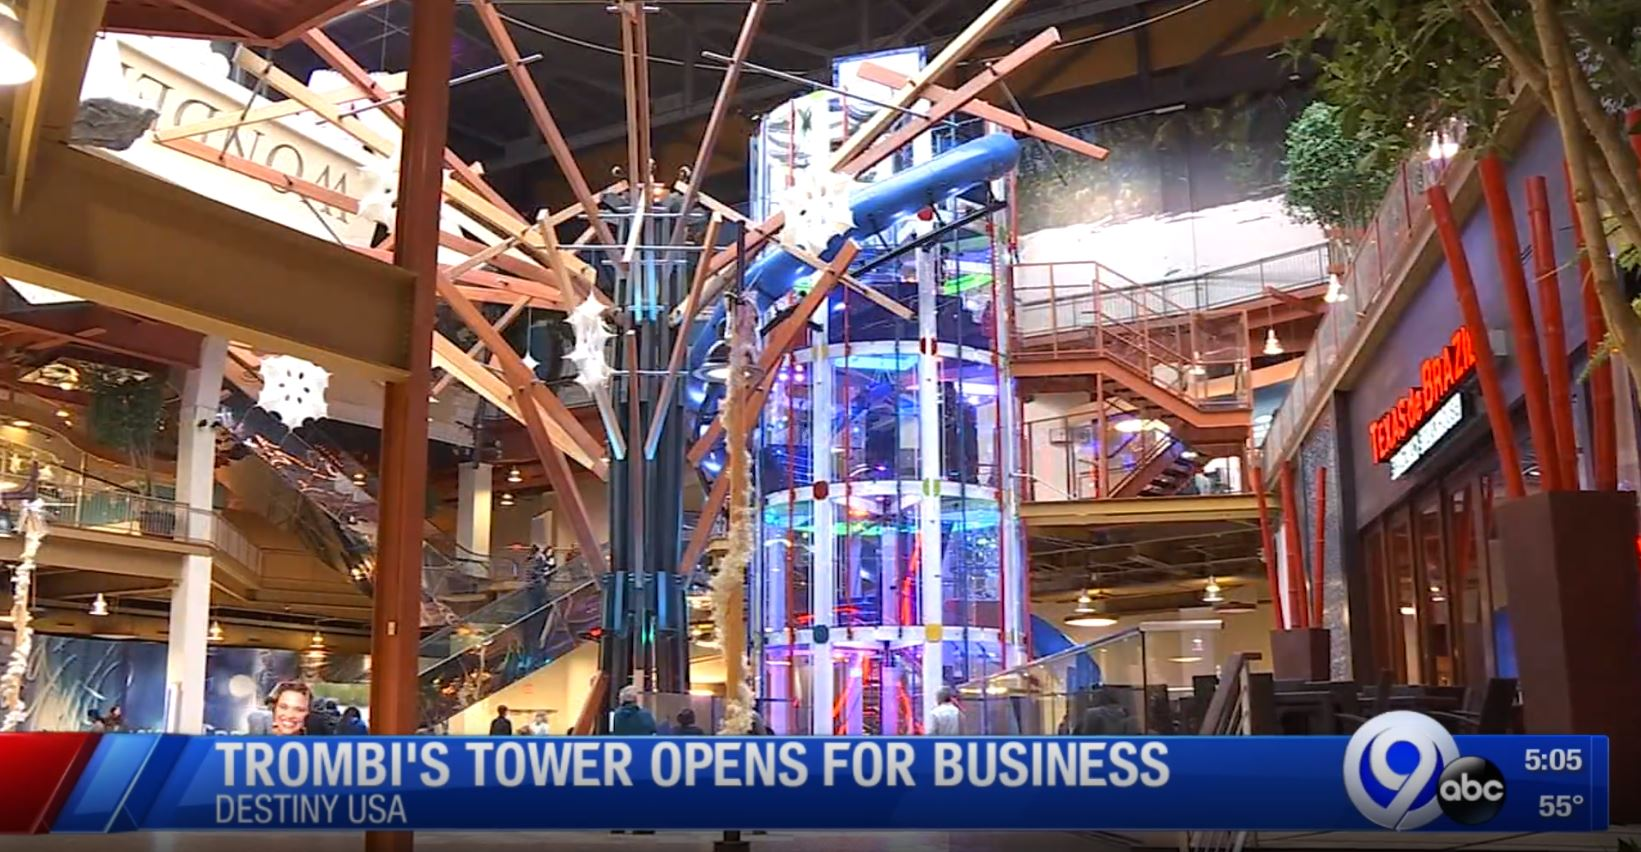 Trombi's Tower: Destiny USA's newest attraction | WSYR on destiny usa floor plan, destiny usa hotel, destiny usa stores, destiny usa interior, destiny usa expansion, us demographic map, destiny usa entertainment, destiny usa restaurants, destiny usa bowling, destiny usa movies, destiny usa syracuse,